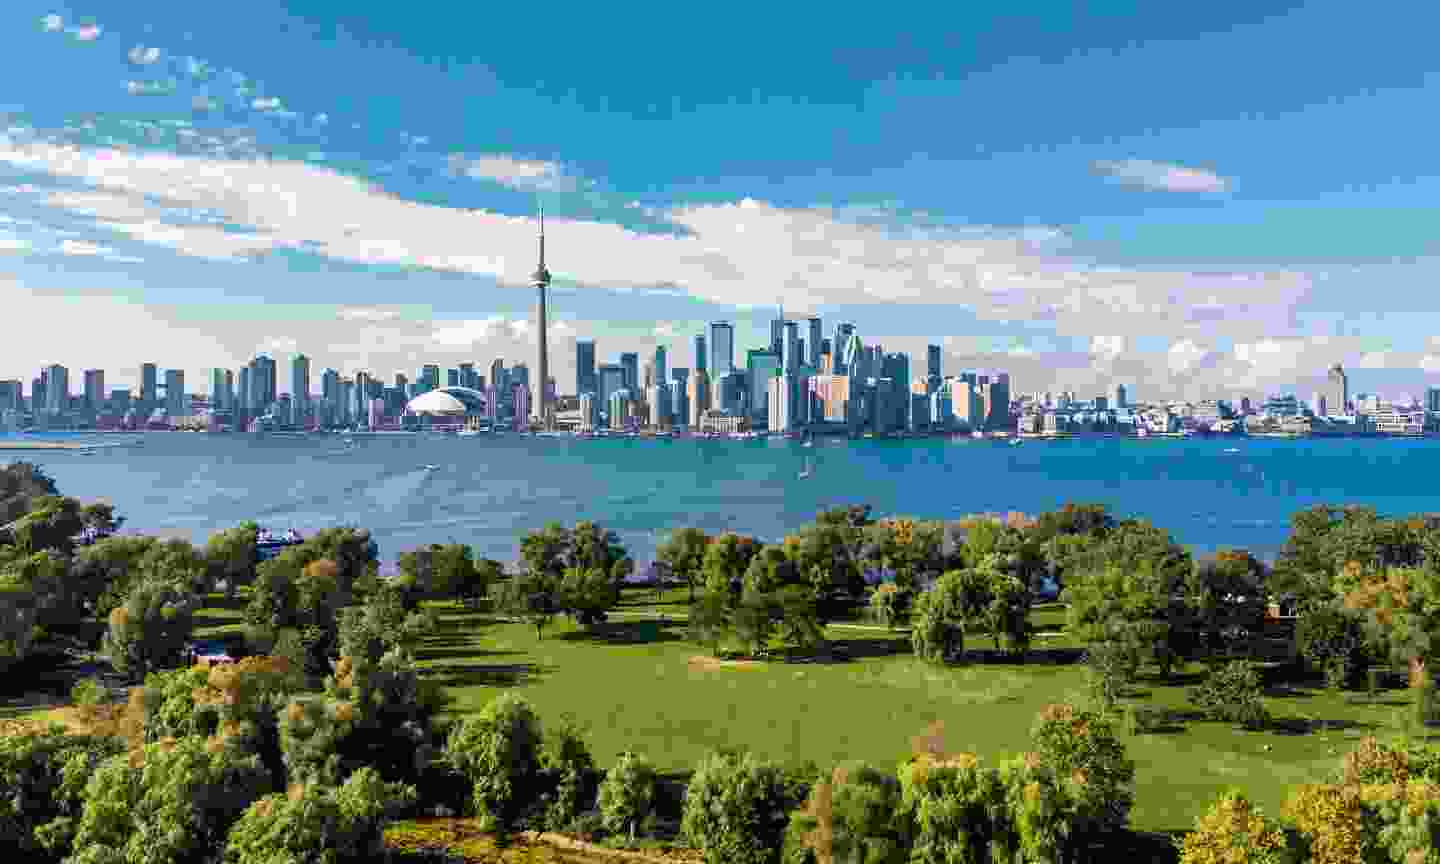 Toronto is making efforts to become greener (Shutterstock)